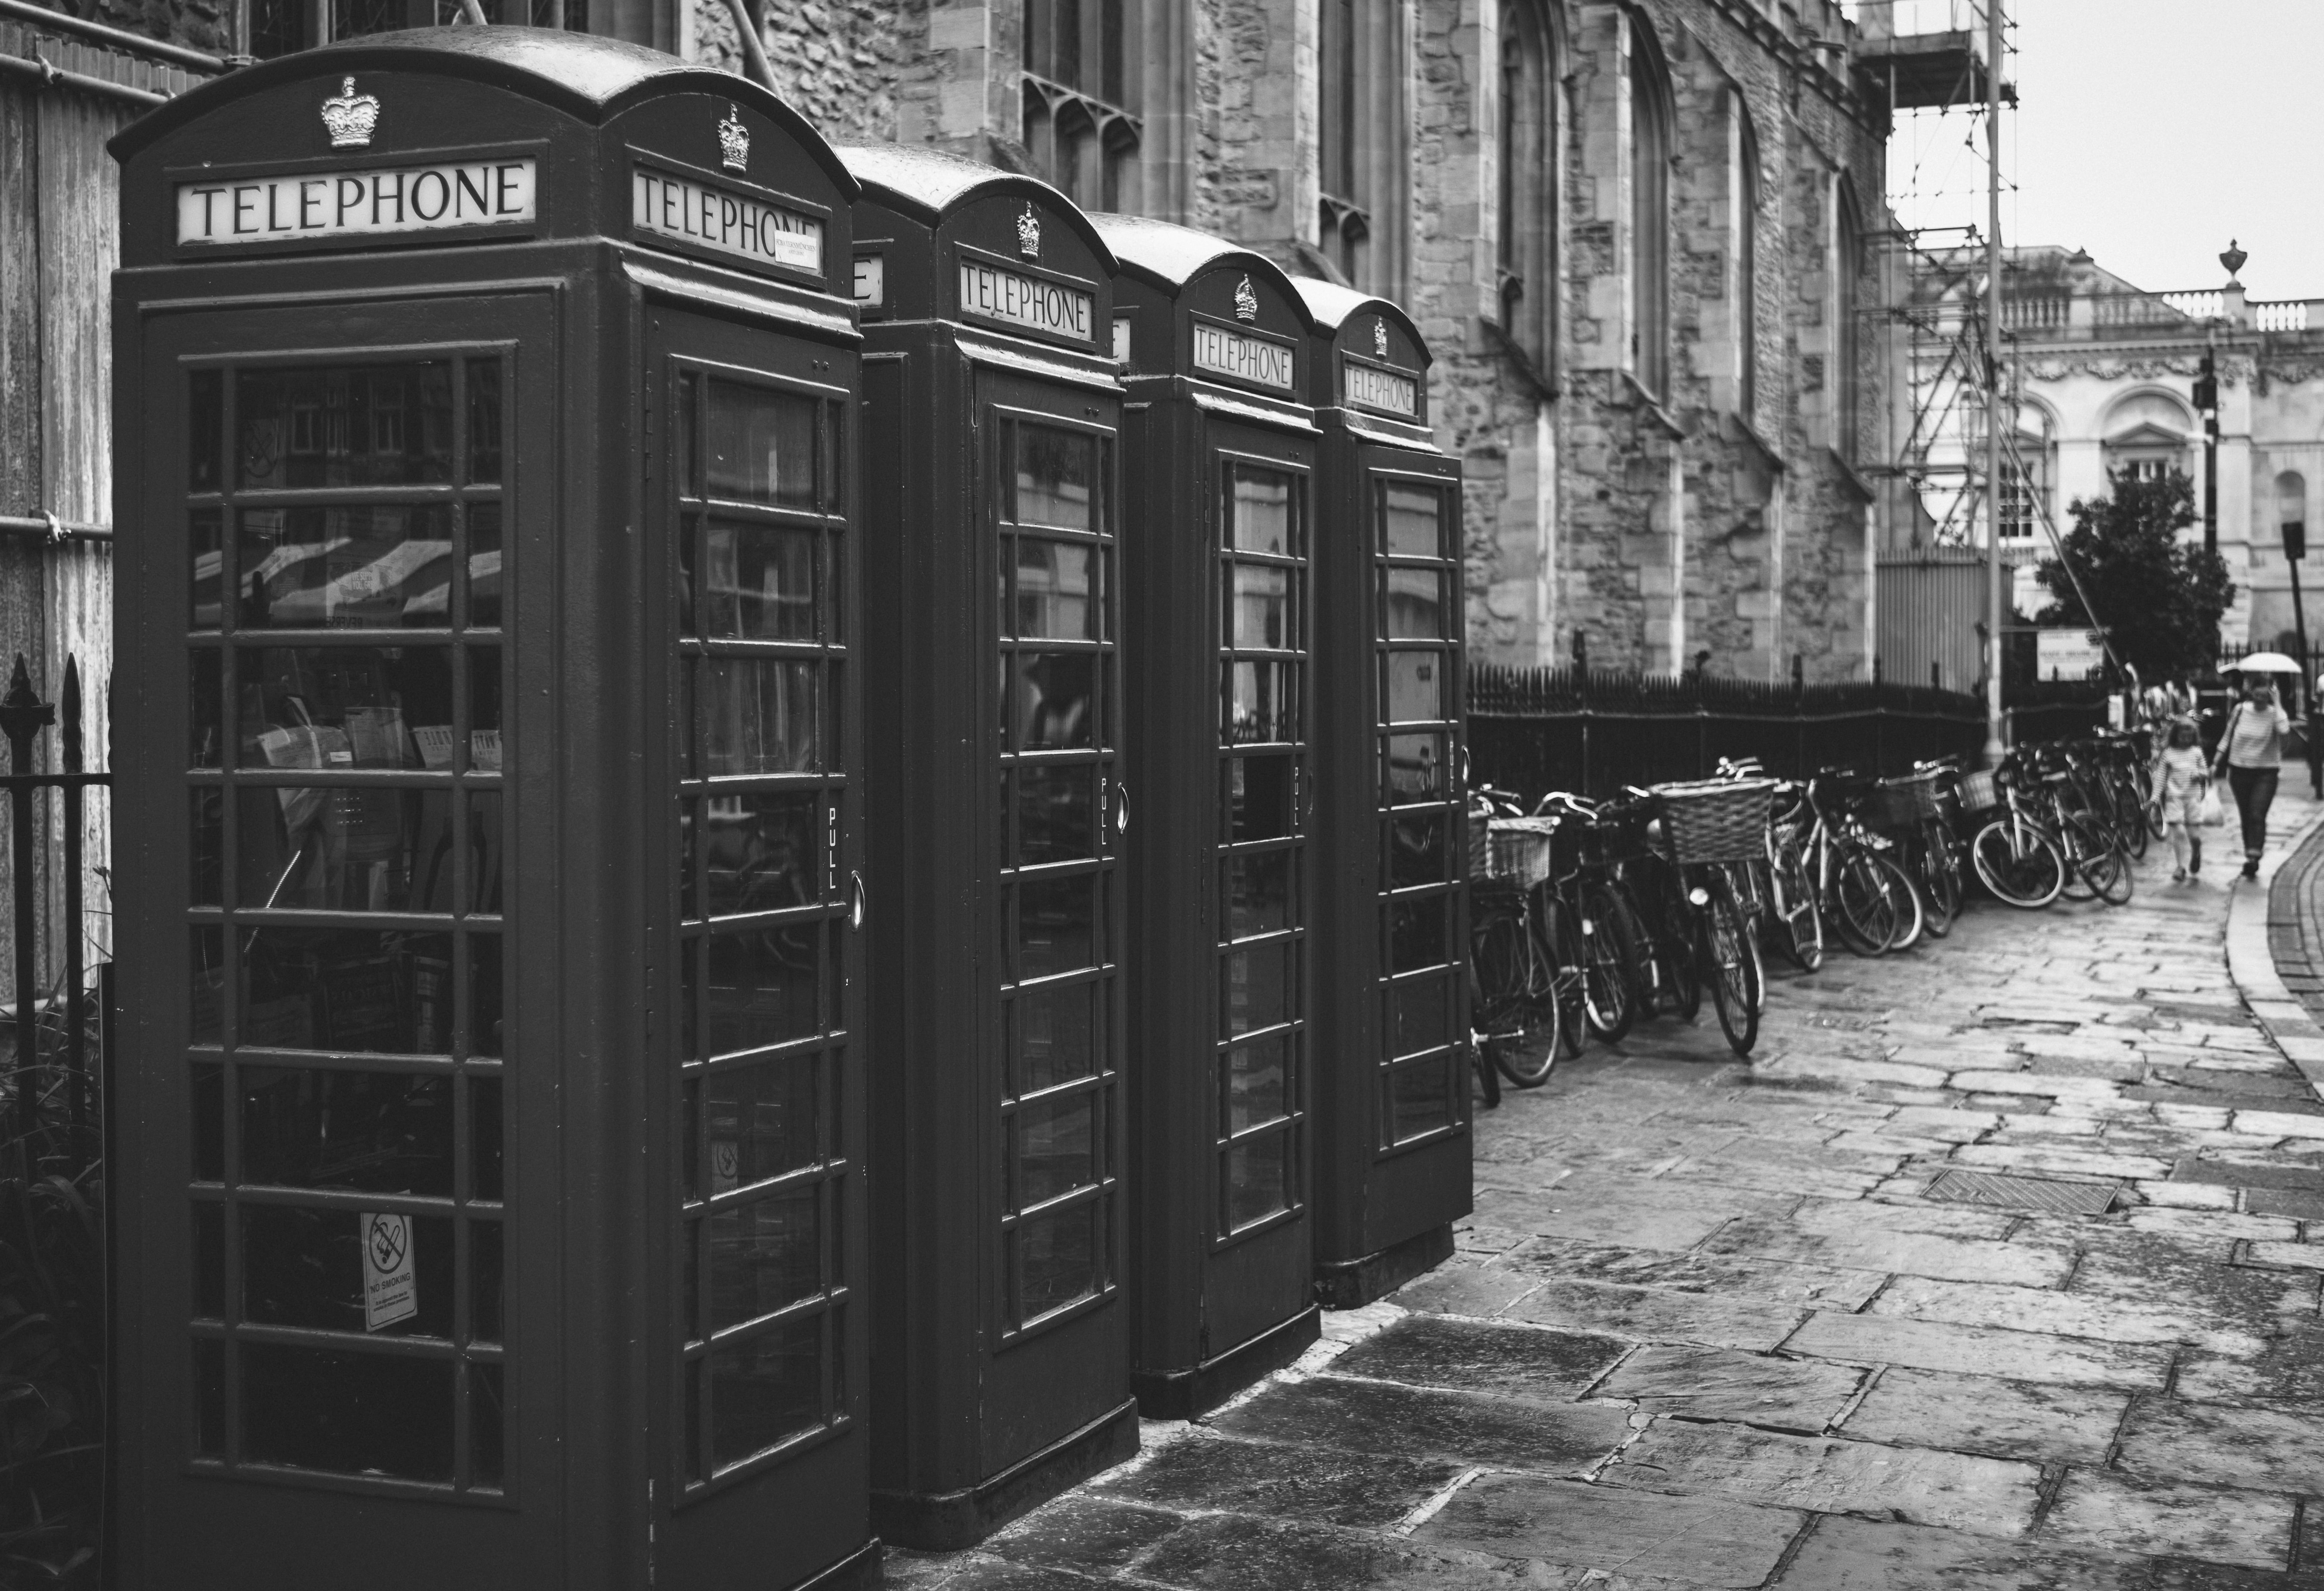 grayscale photo of four telephone booths lined up